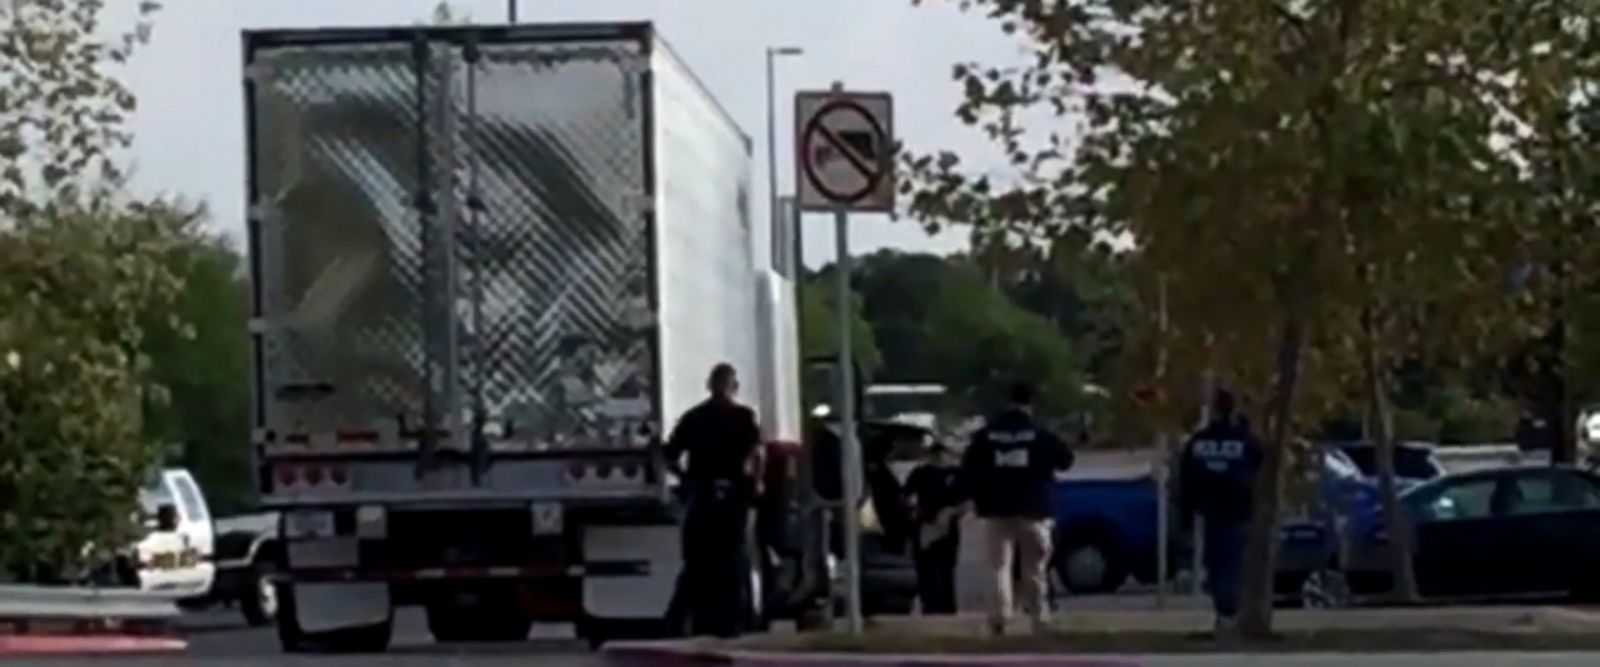 VIDEO: A total of 39 people, including children, were recovered from the tractor-trailer parked outside a San Antonio, Texas, Walmart this weekend. Ten people, all adult men, died, and 29 people were being treated at hospitals, officials said.